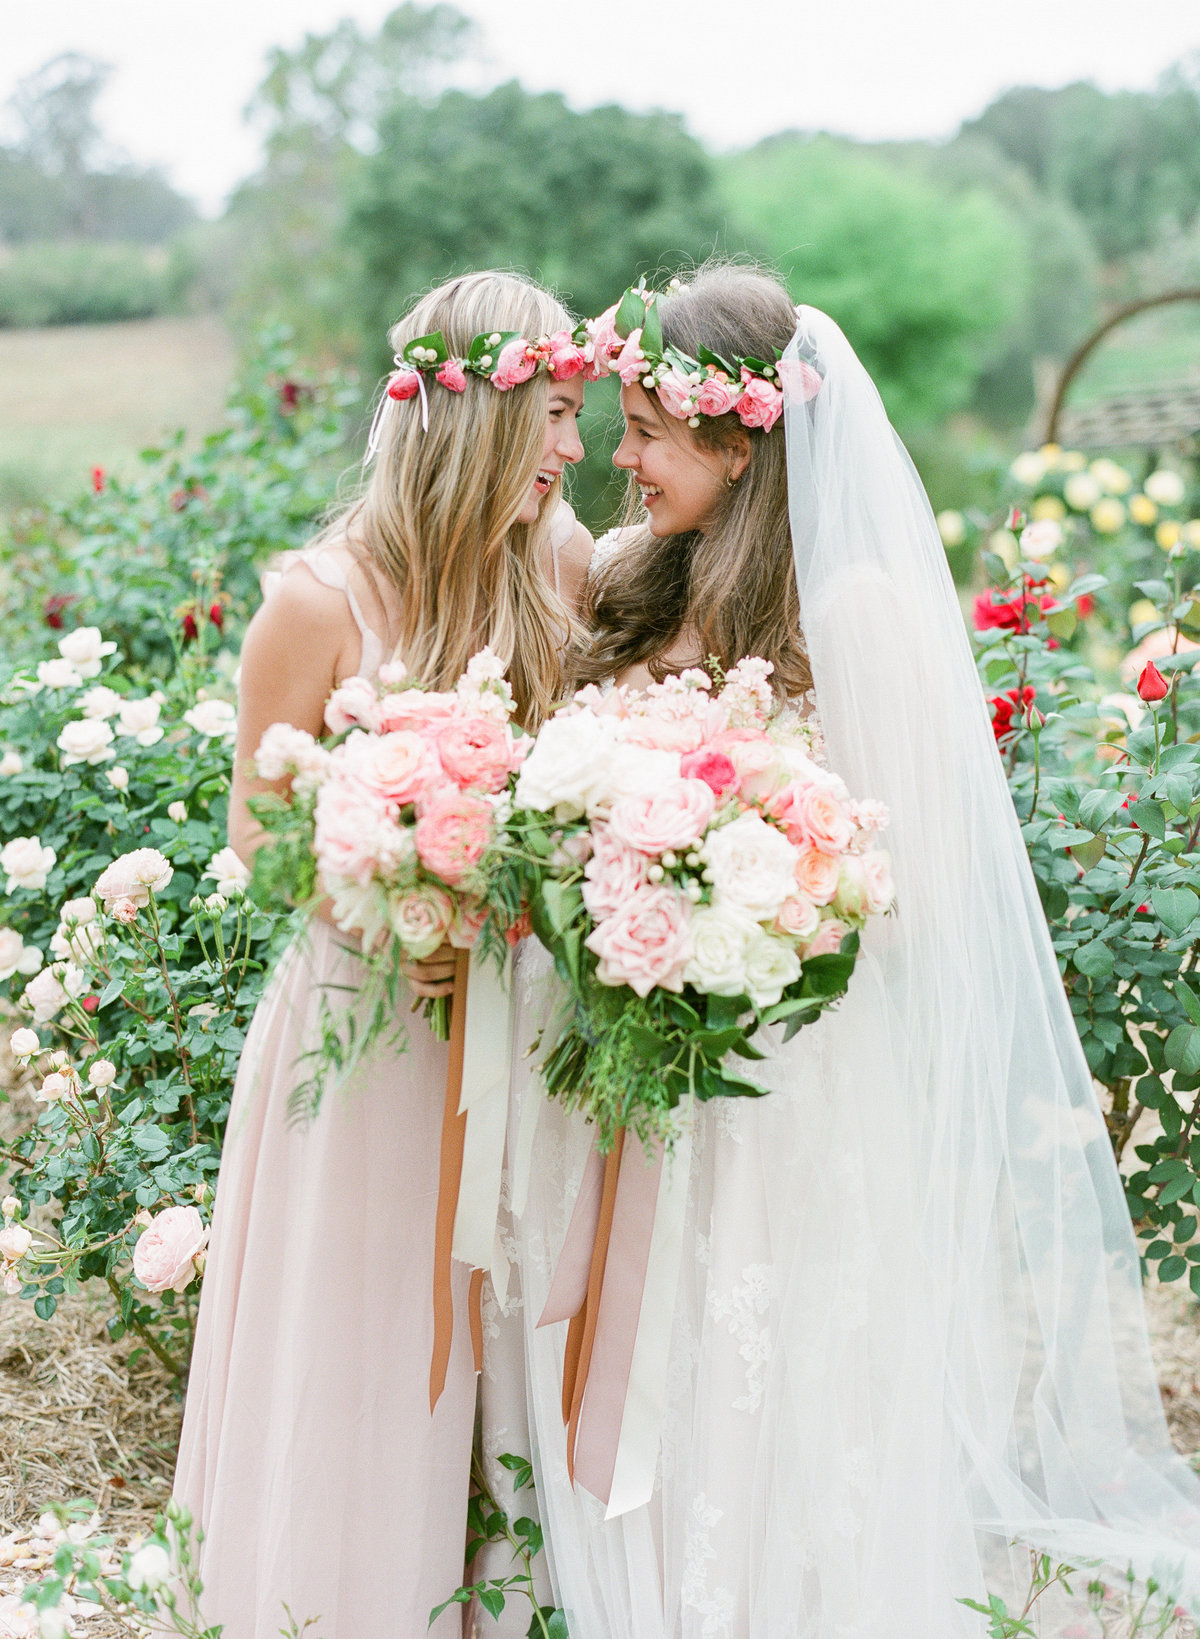 dreamy fine art wedding australia camden will capen 0057